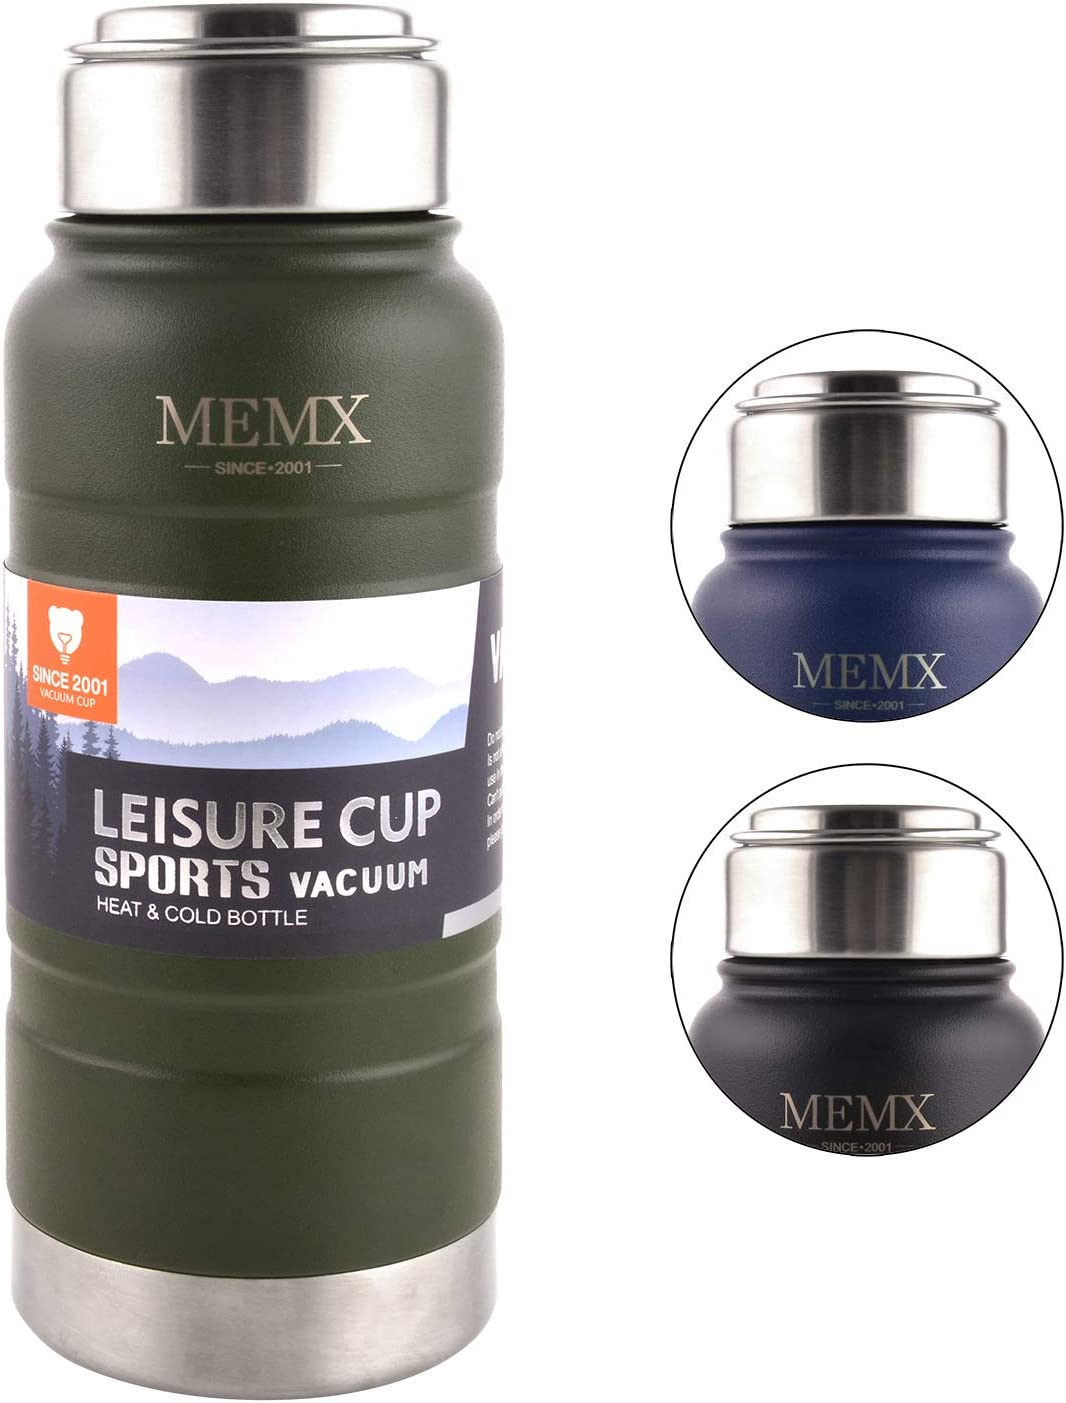 MEMX Stainless Steel Vacuum Insulated Water Bottle, 17 Ounce Sports Thermos Flask, Built-in Filter Thermo Mug, Keeps Hot or Cold with Double Wall Insulated Sweat Proof Design, Green.